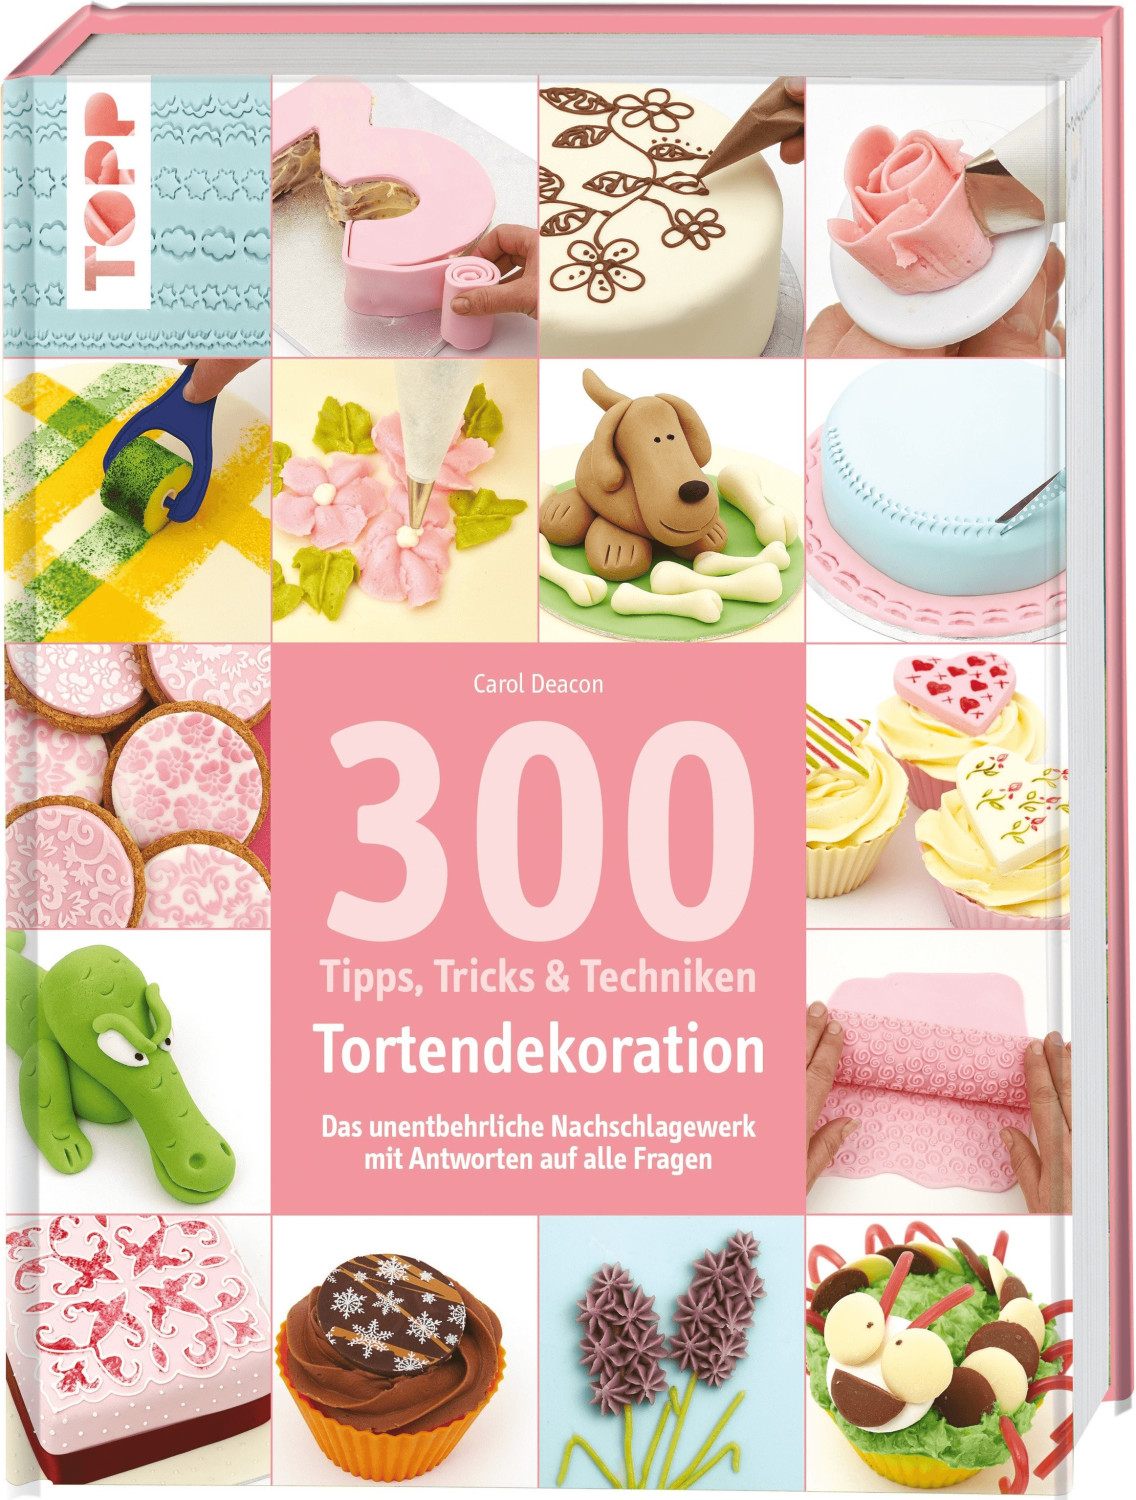 300 Tipps, Tricks & Techniken - Tortendekoration